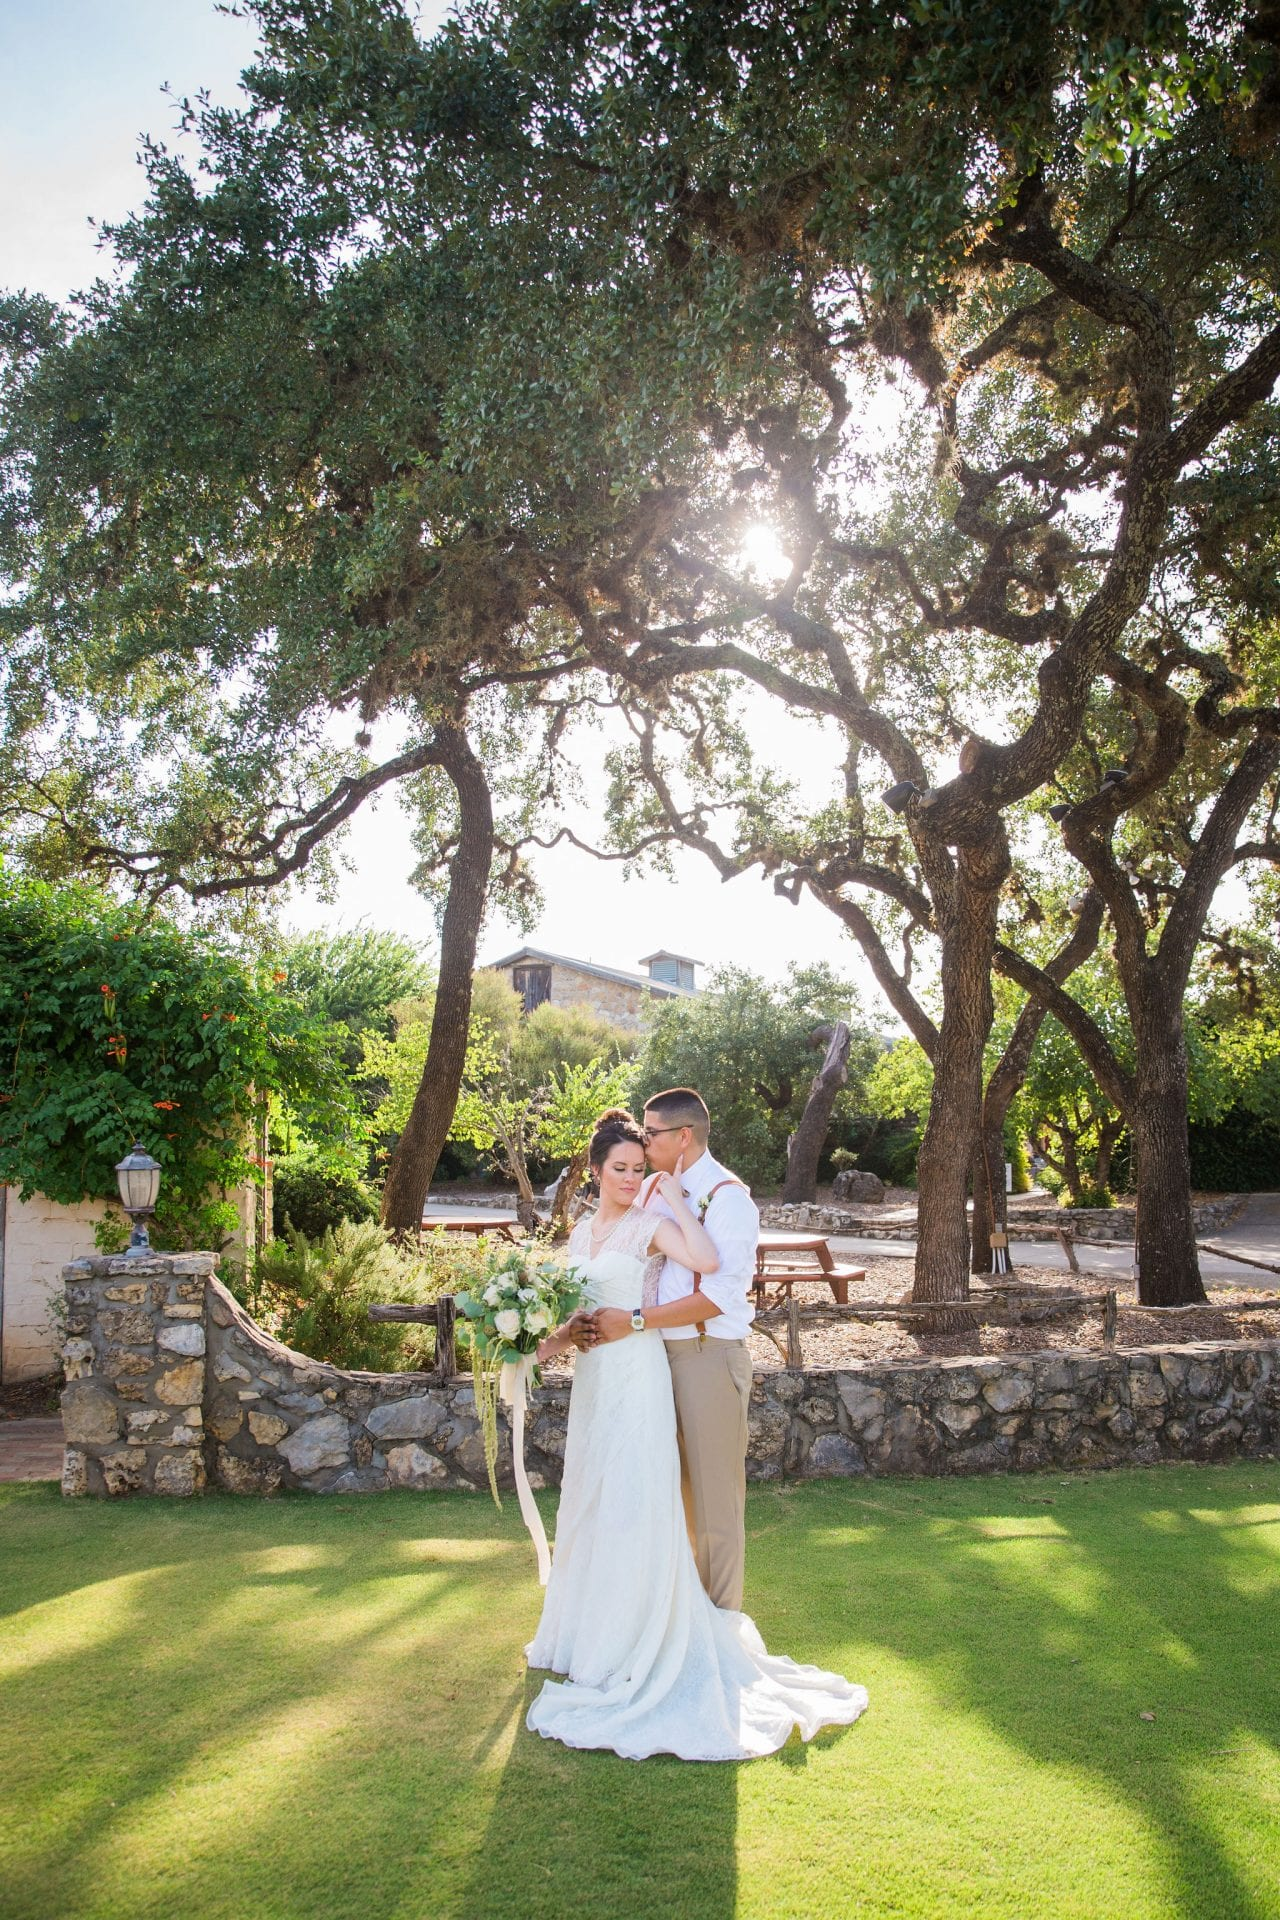 Aamber wedding Canyon Springs Golf Course couple by stone wall with sun